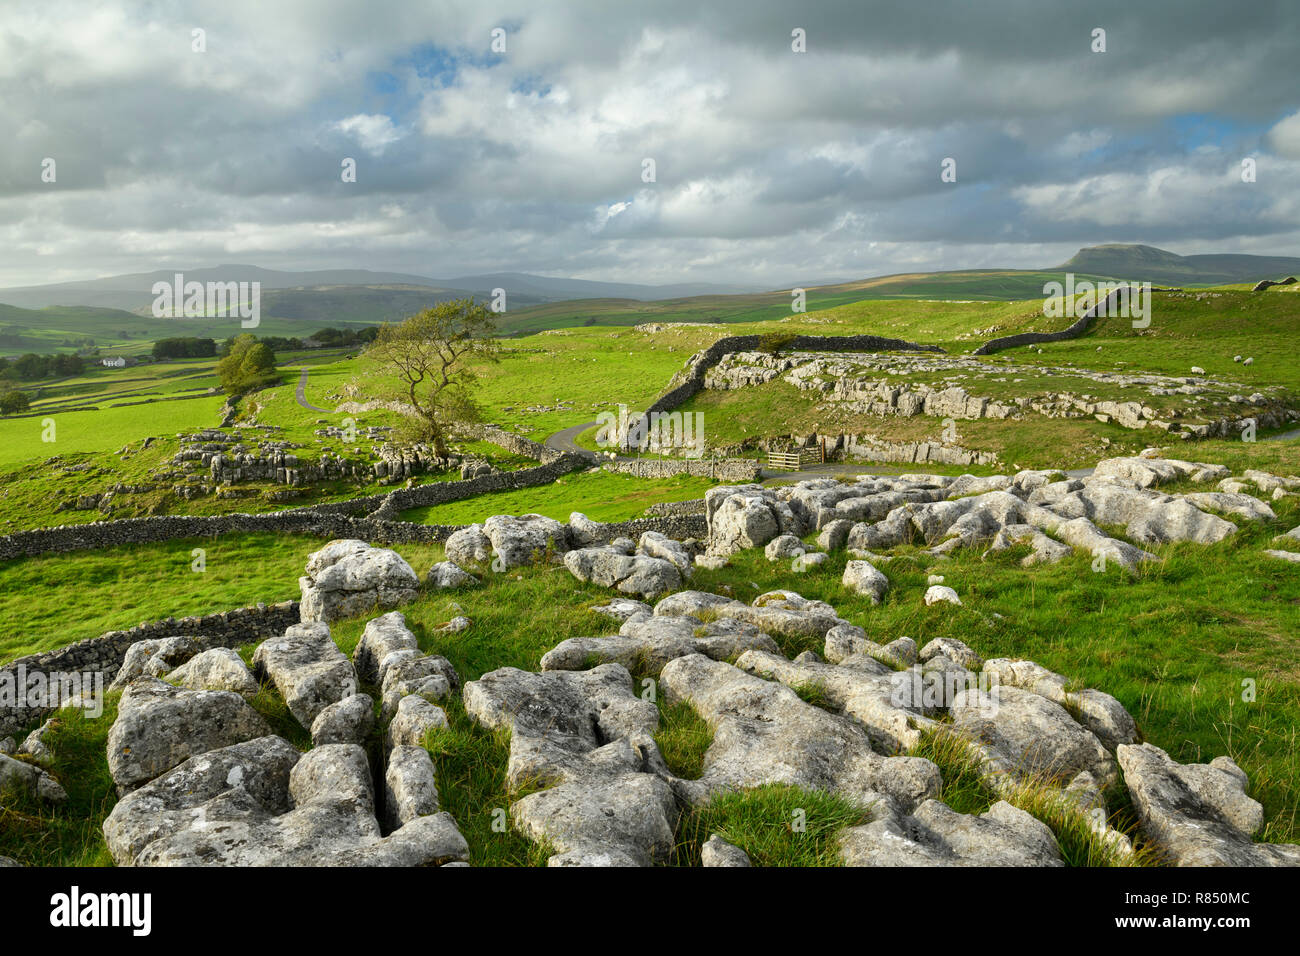 Beautiful view over limestone pavement & rolling upland countryside from Winskill Stones - near Langcliffe & Stainforth, Yorkshire Dales, England, UK. Stock Photo